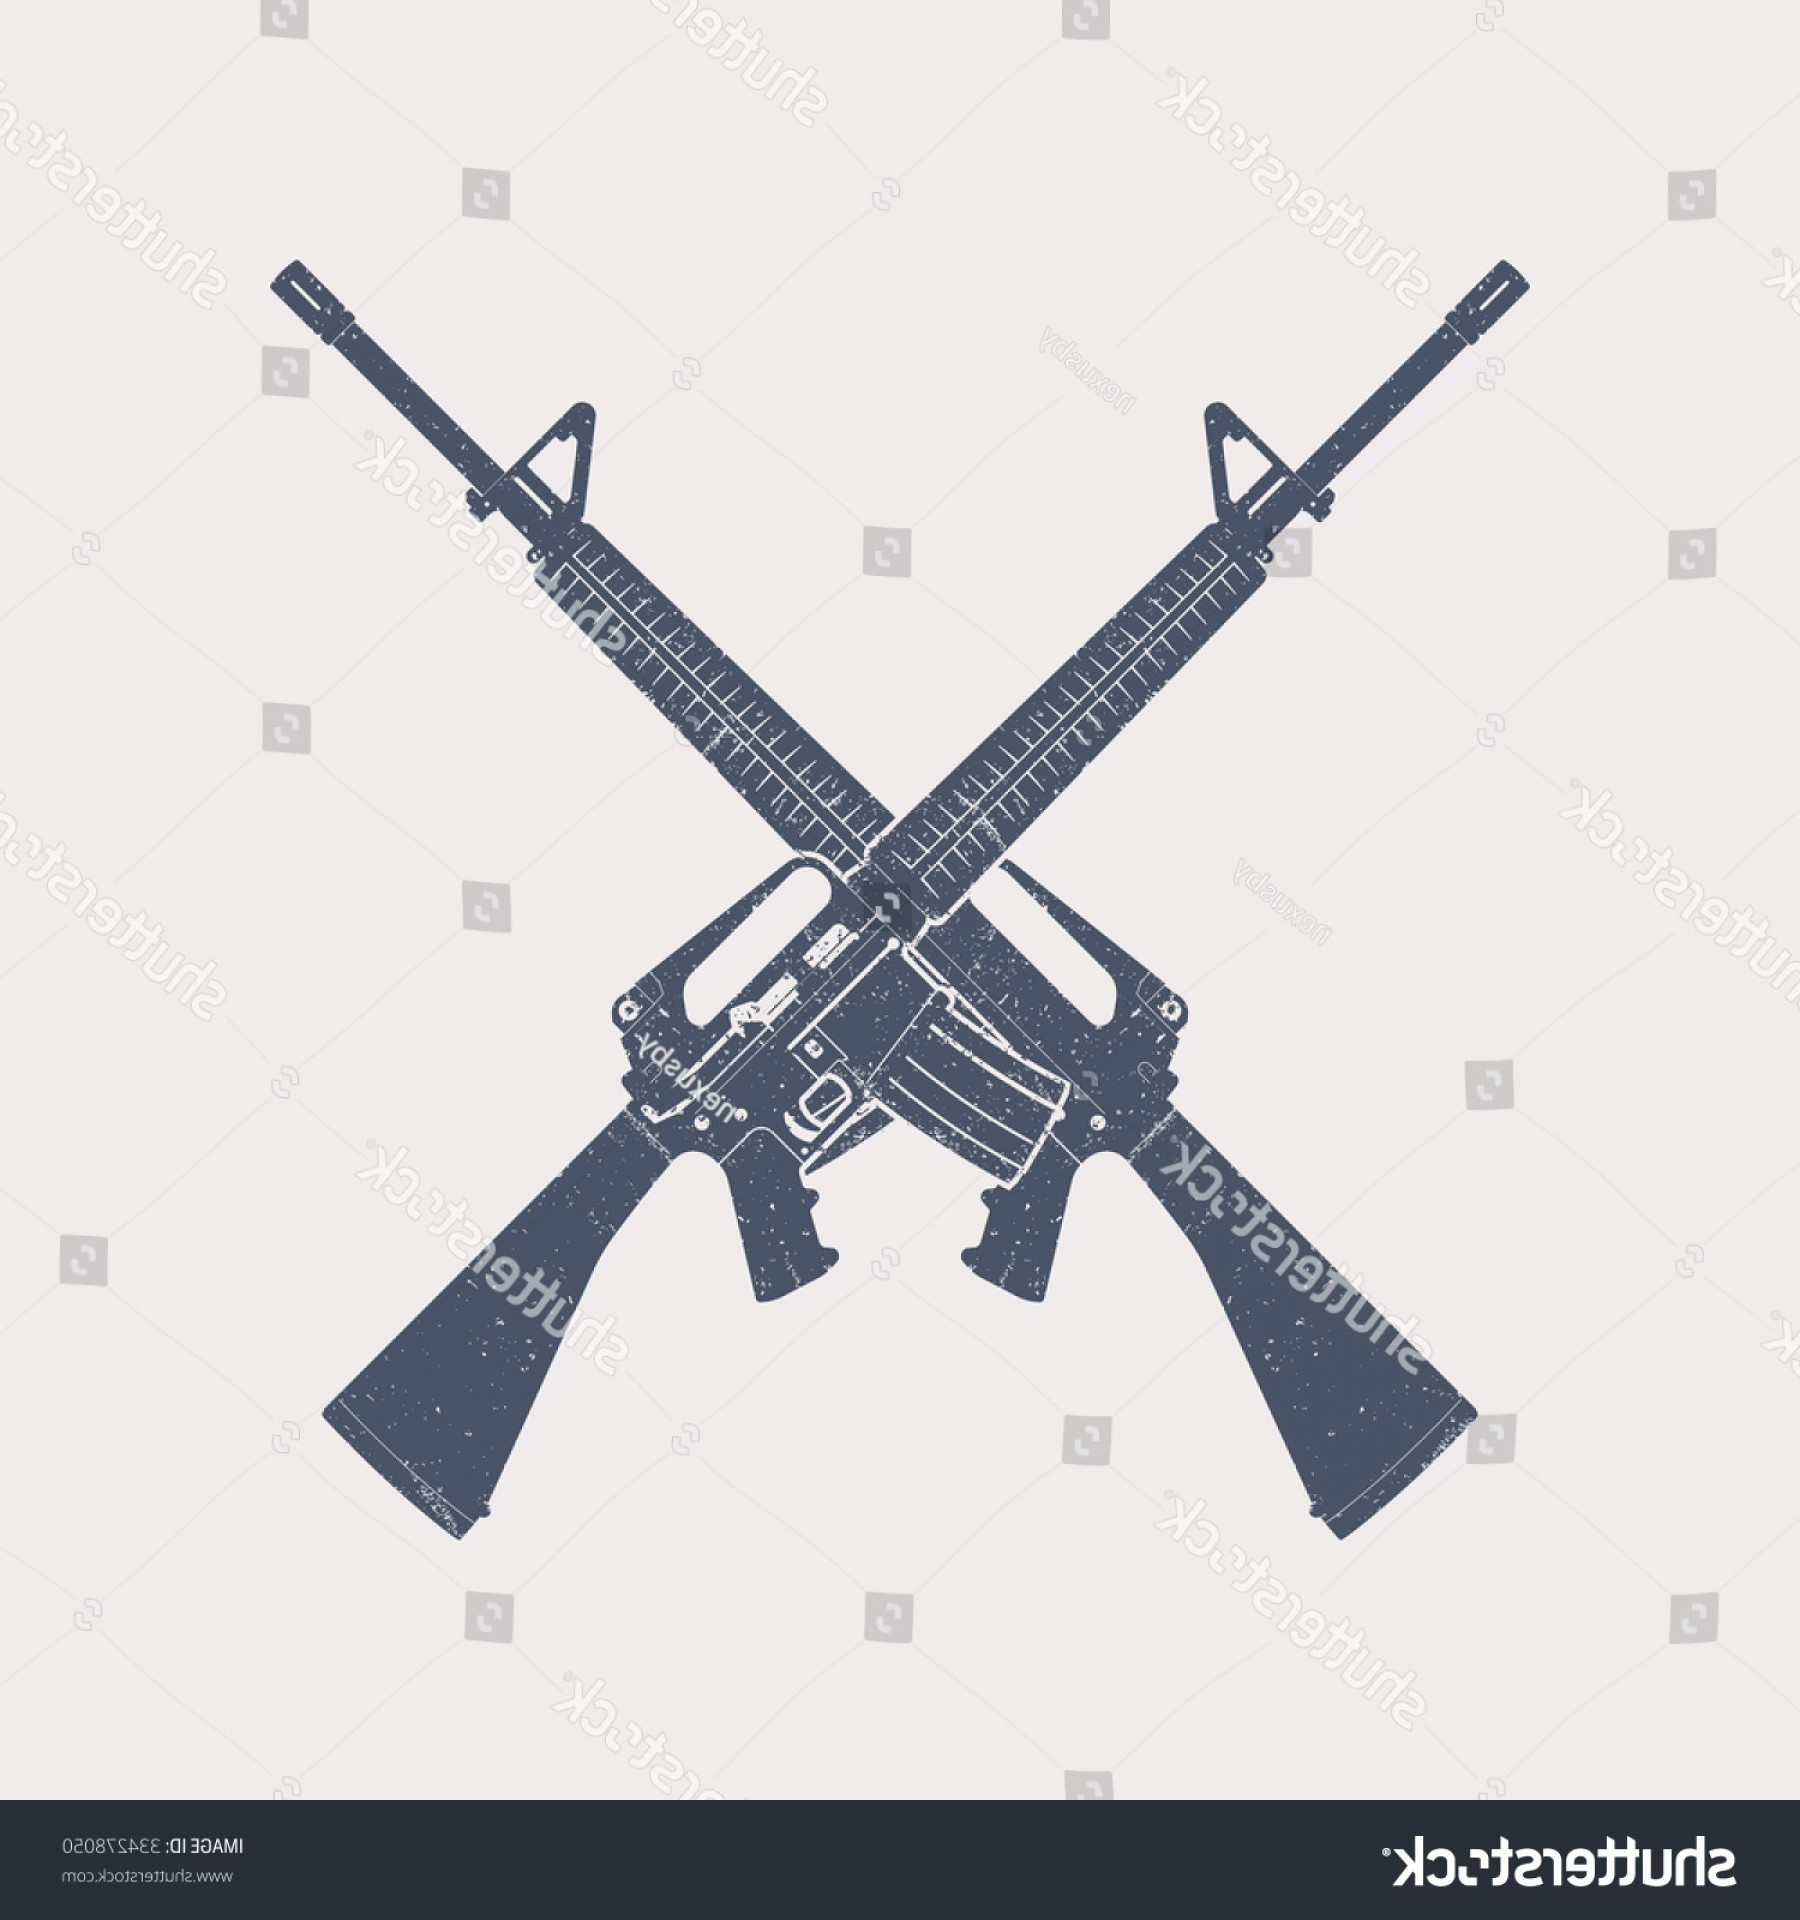 Hunting Rifle Vector Cross: Crossed Assault Rifles Automatic Firearm Guns